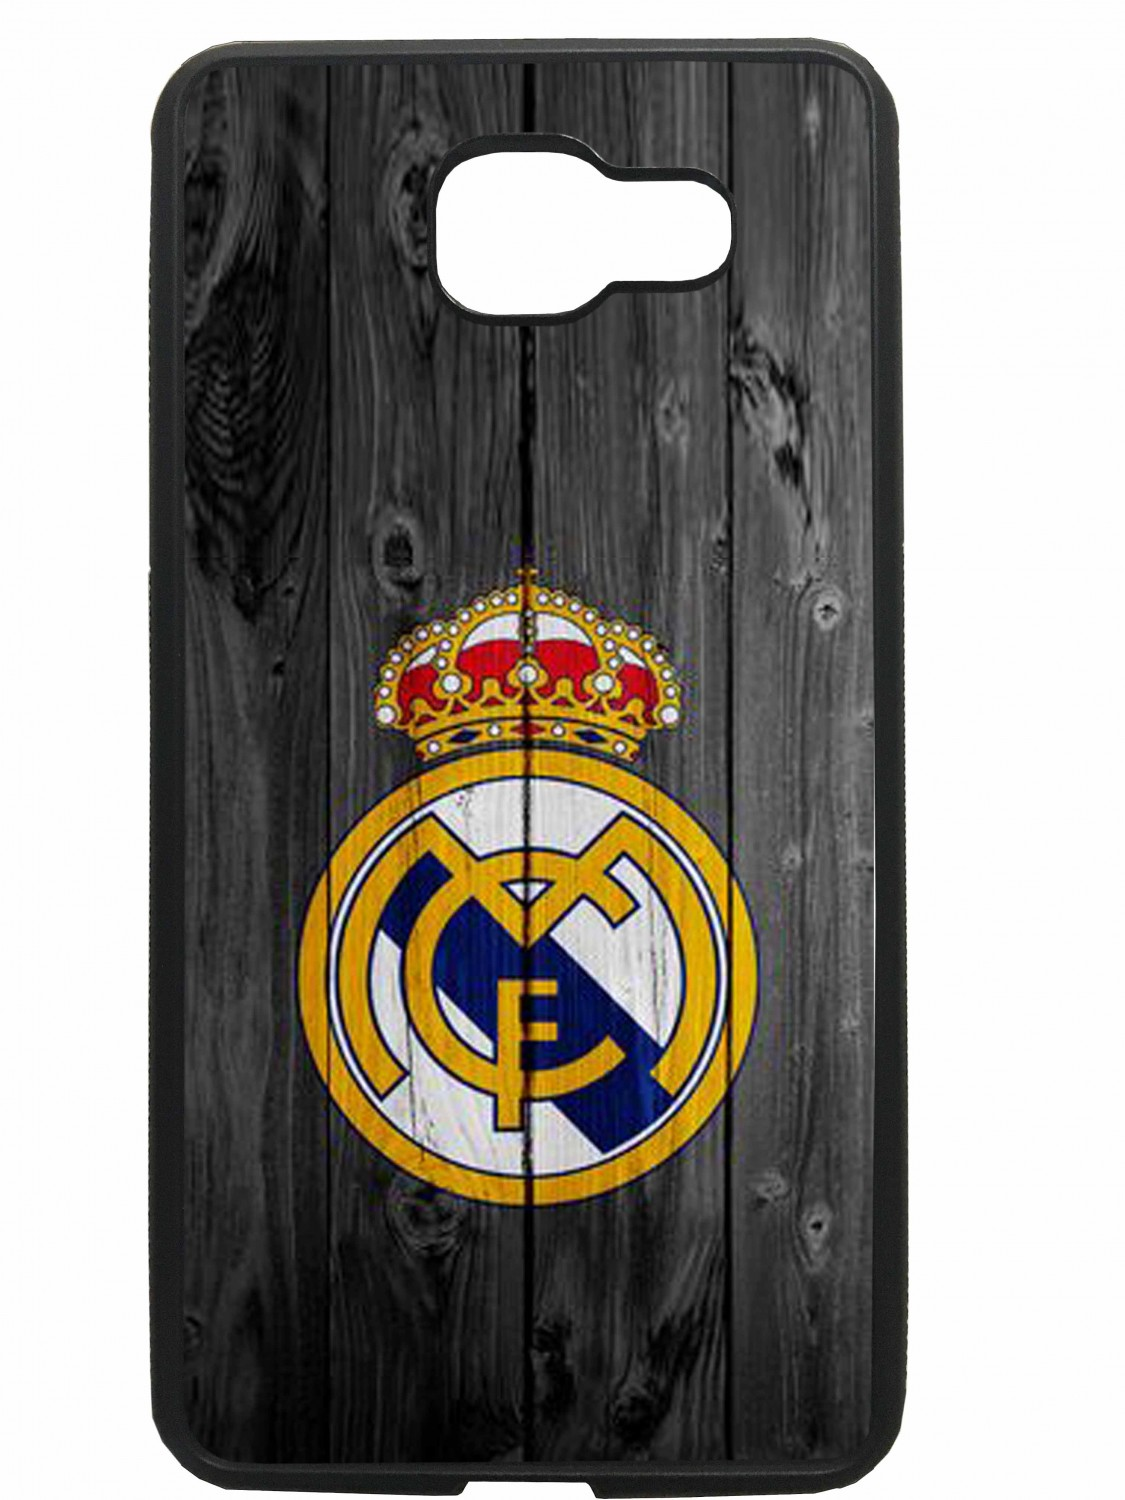 carcasas fundas movil tpu compatible con samsung galaxy a7 2017 real madrid rma